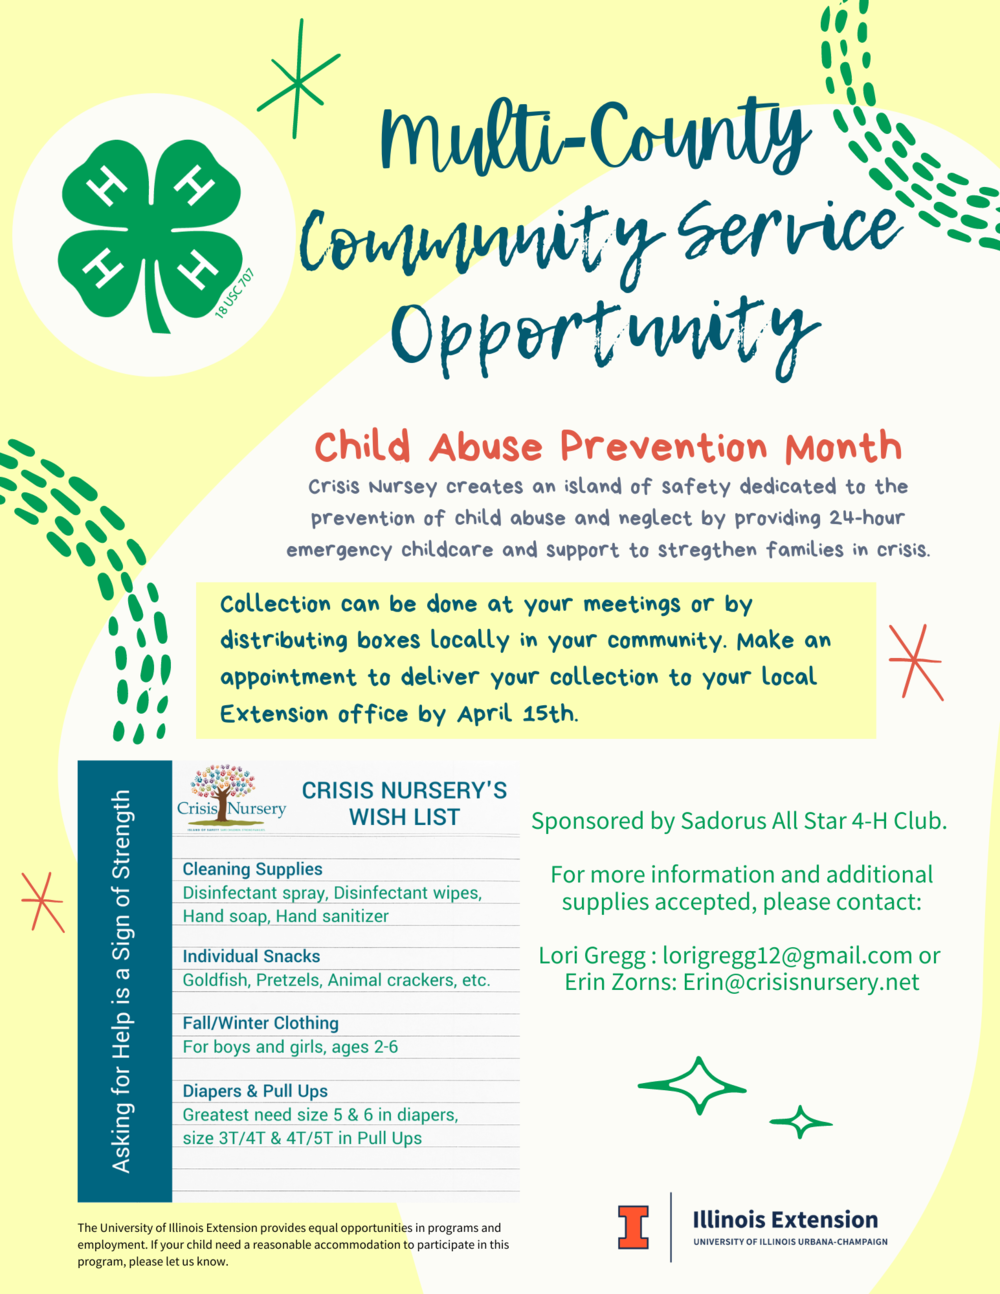 Multi-County Community Service Opportunity: Crisis Nursey creates an island of safety dedicated to the prevention of child abuse and neglect by providing 24-hour emergency childcare and support to stregthen families in crisis.Collection can be done at your meetings or by distributing boxes locally in your community. Make an appointment to deliver your collection to your local Extension office by April 15th.